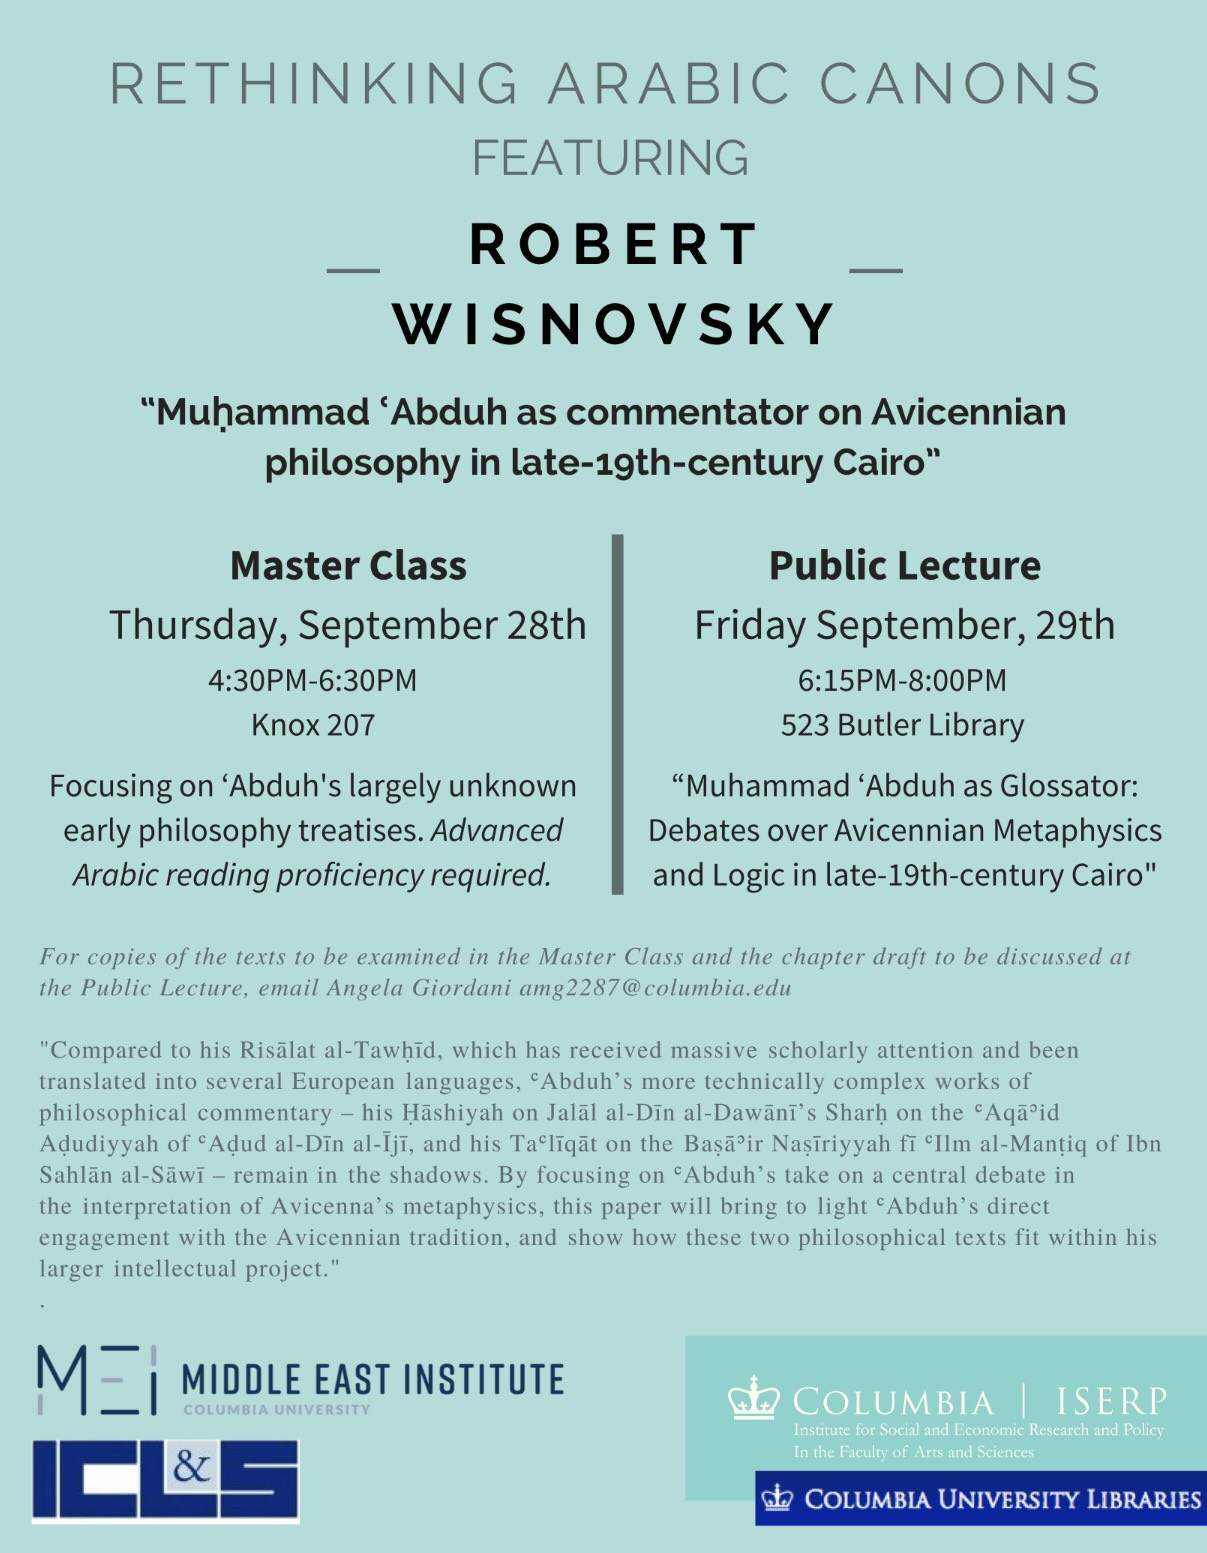 Arabic Canons | Robert Wisnovsky — Middle East Institute